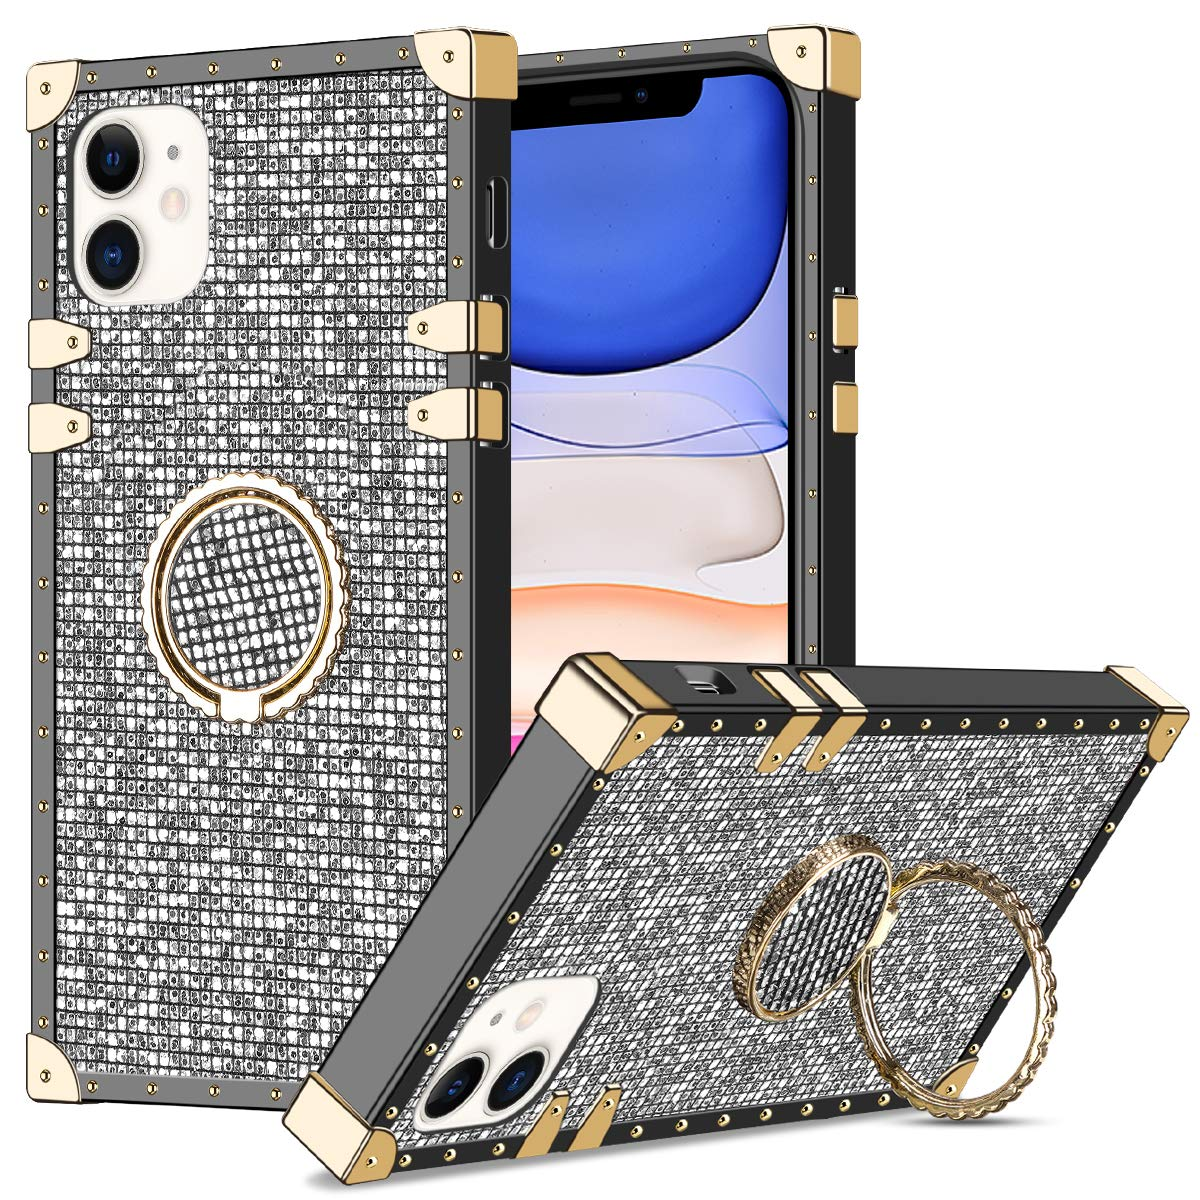 WOLLONY for iPhone 11 Case with Kickstand Ring Holder Square Edge for Hippie Women Girl Retro Bling Elegant Soft Protective Metal Reinforced Corners Shockproof Cover for iPhone 11 6.1inch Diamond